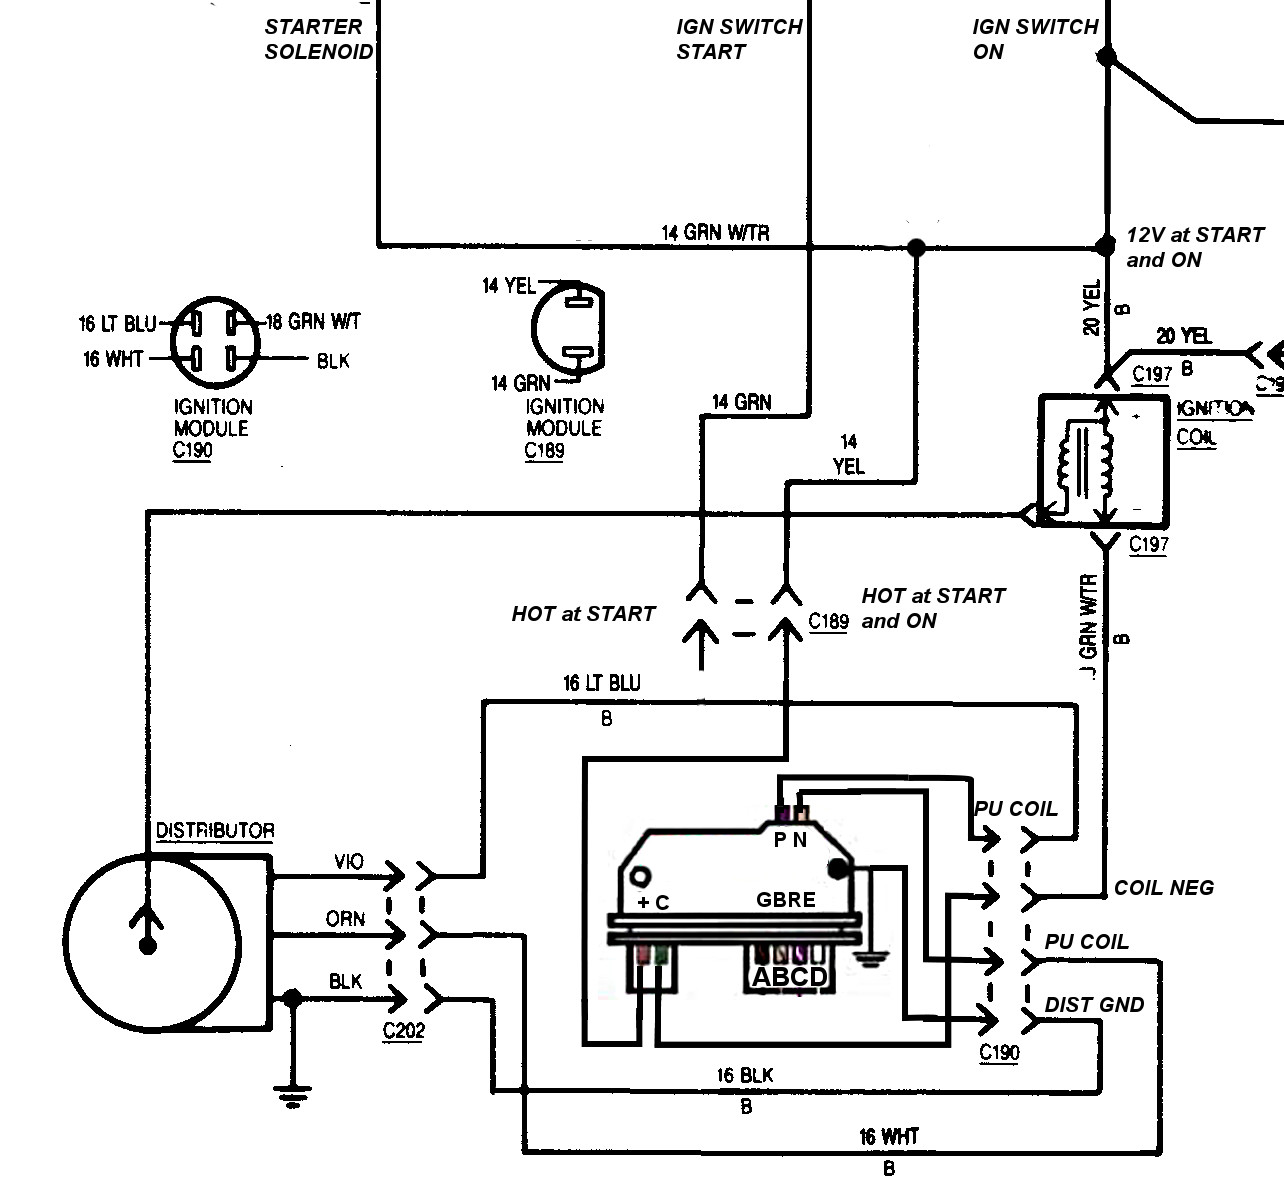 medium resolution of 5 pin gm hei ignition module wiring diagram images gallery